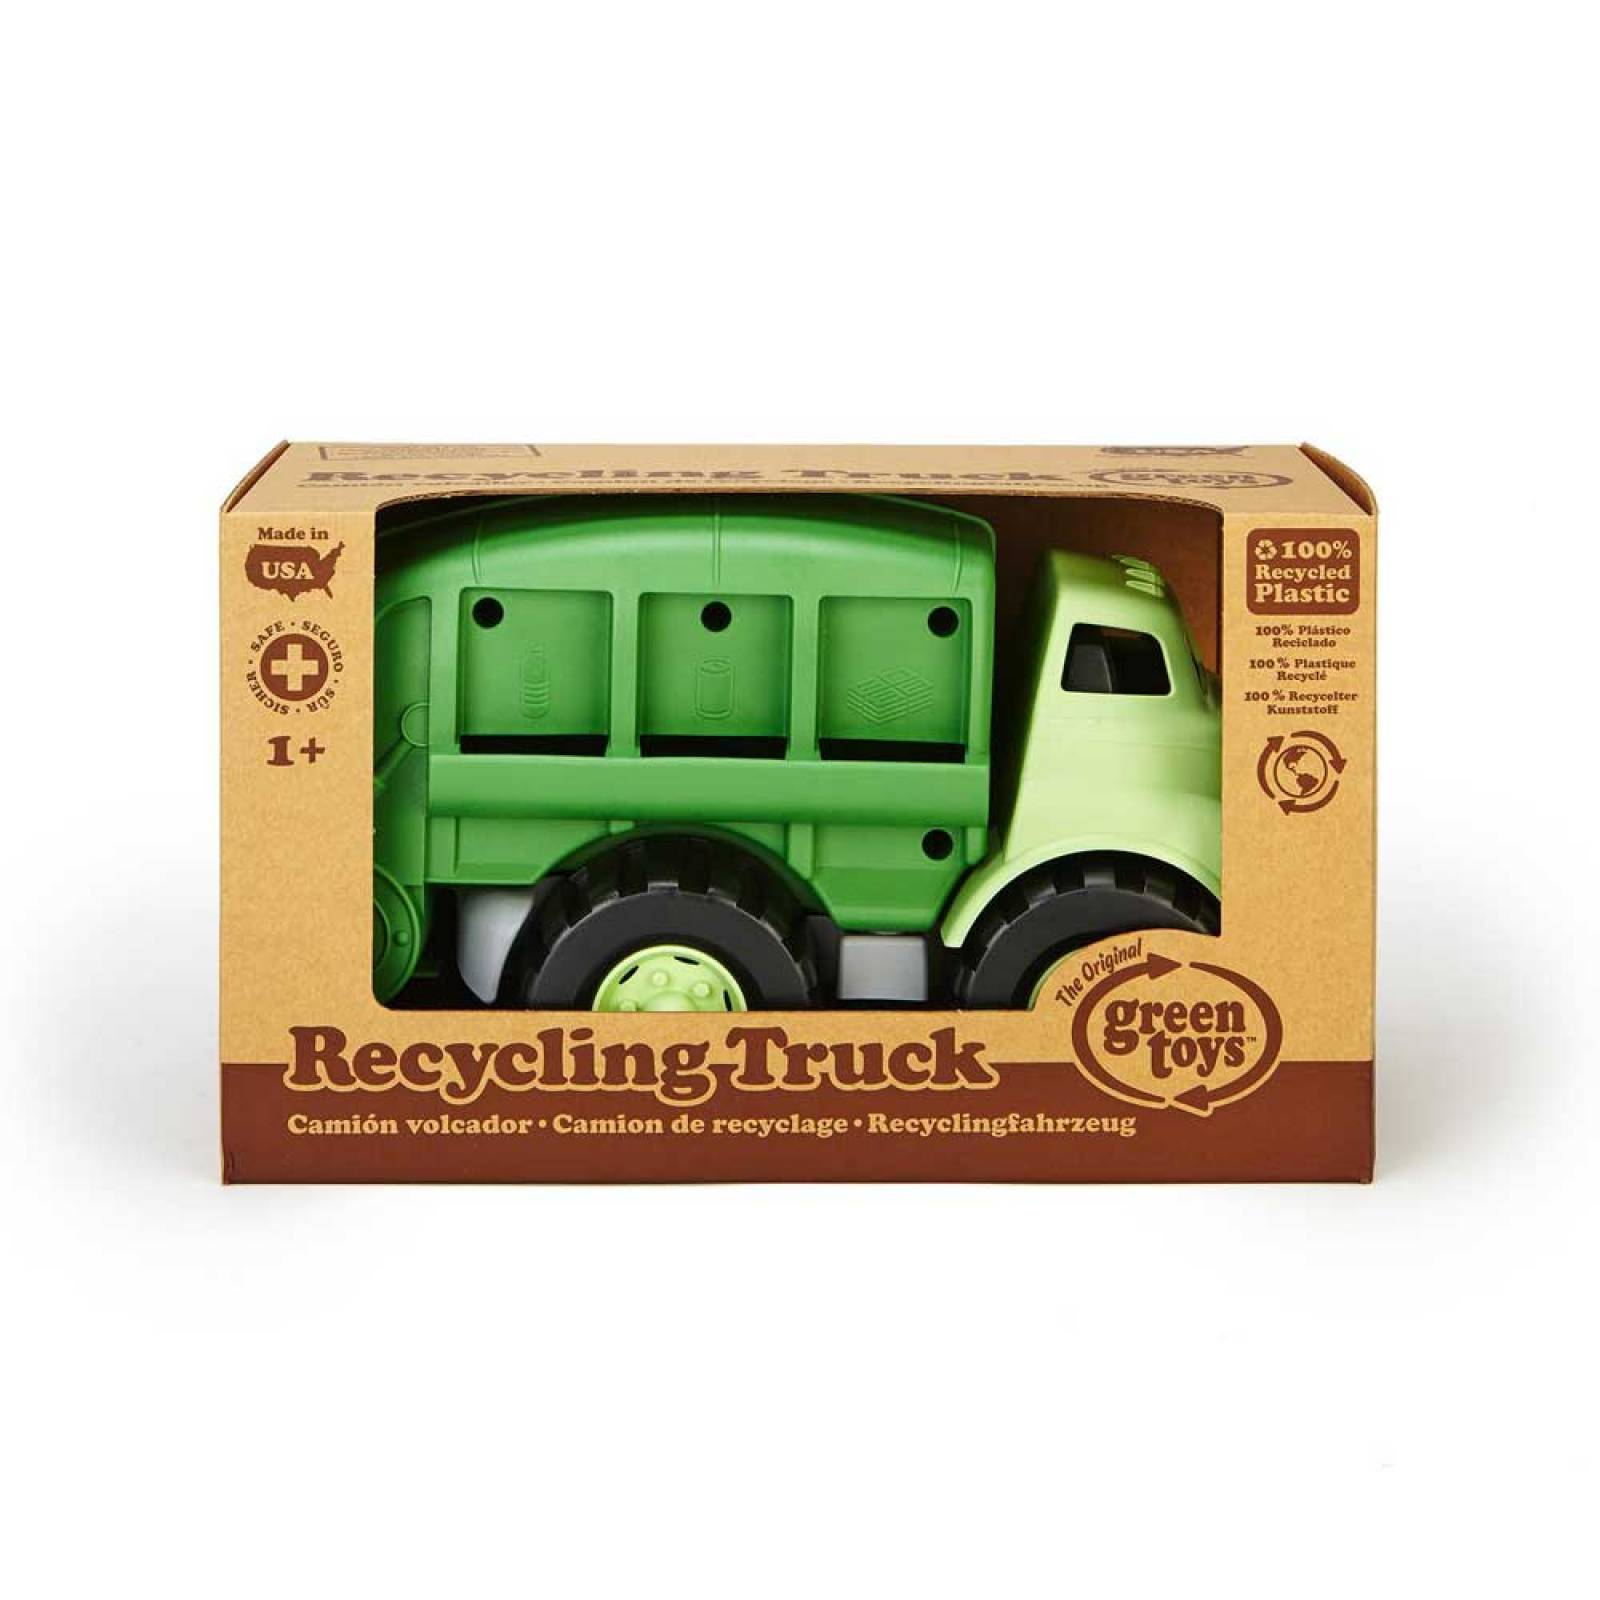 Recycling Dustbin Truck - Green Toys Recycled Plastic 3+ thumbnails